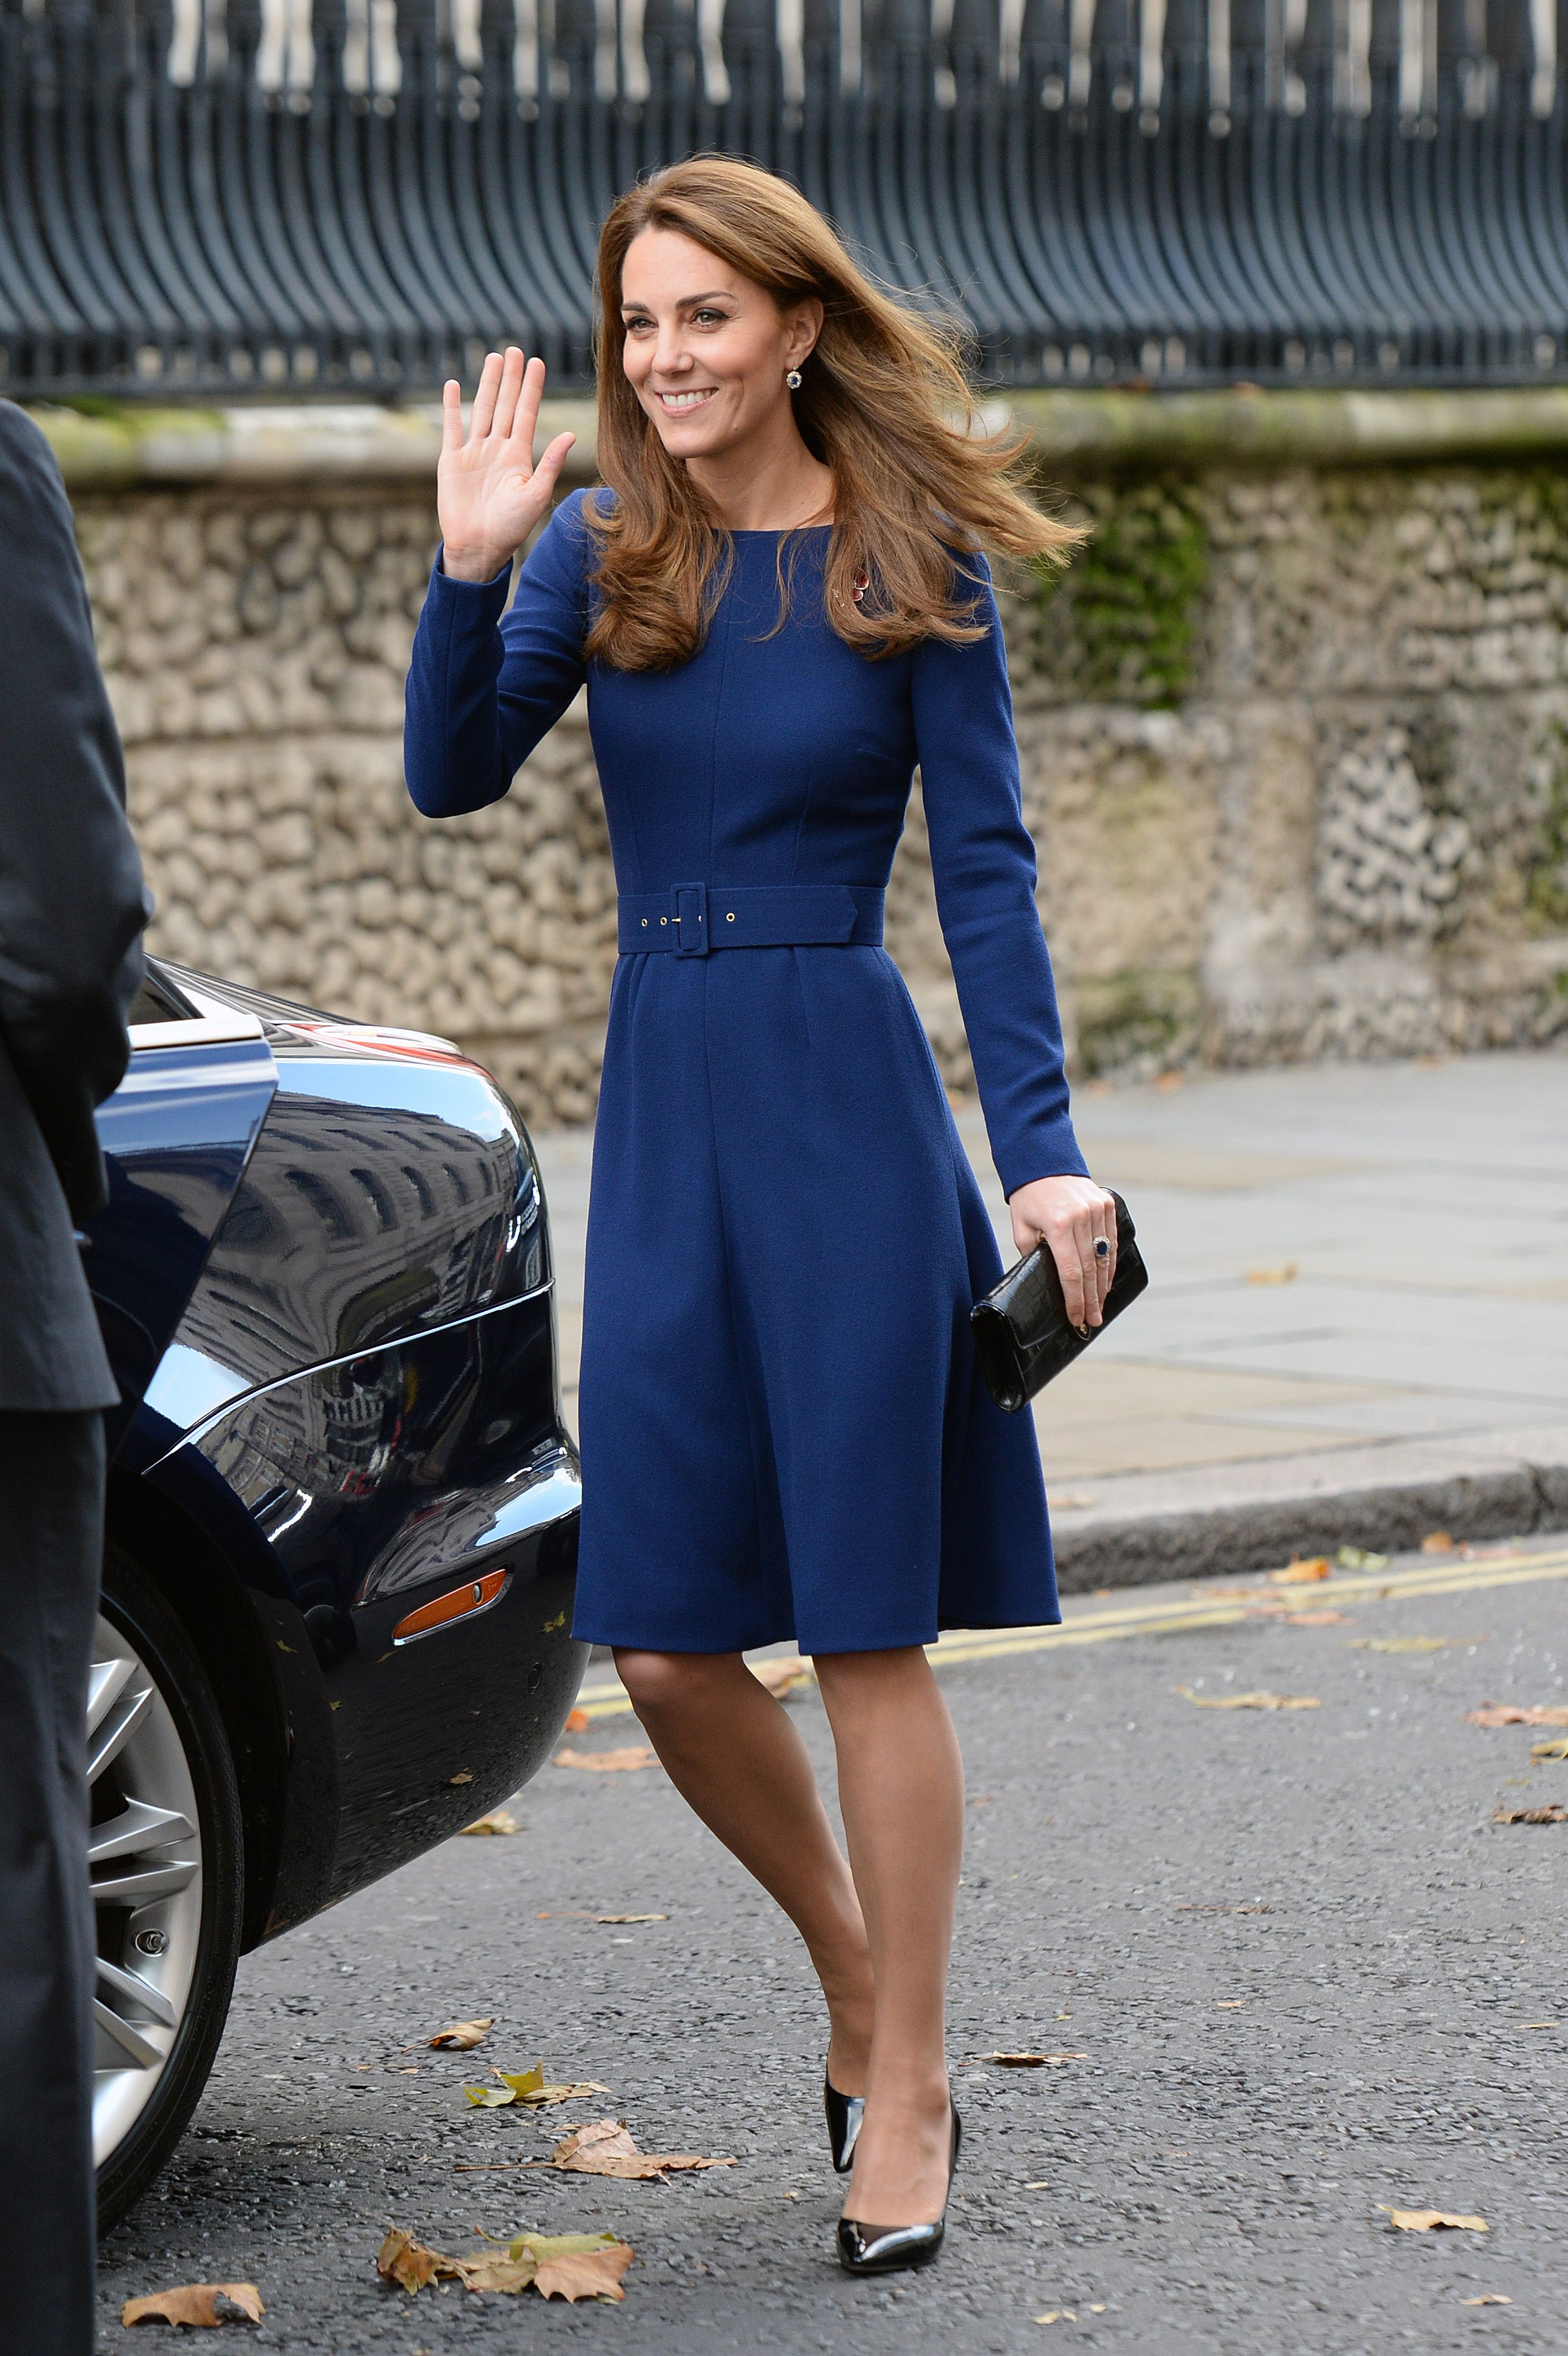 Kate Middleton Best Fashion and Style Moments - Kate Middleton's ...